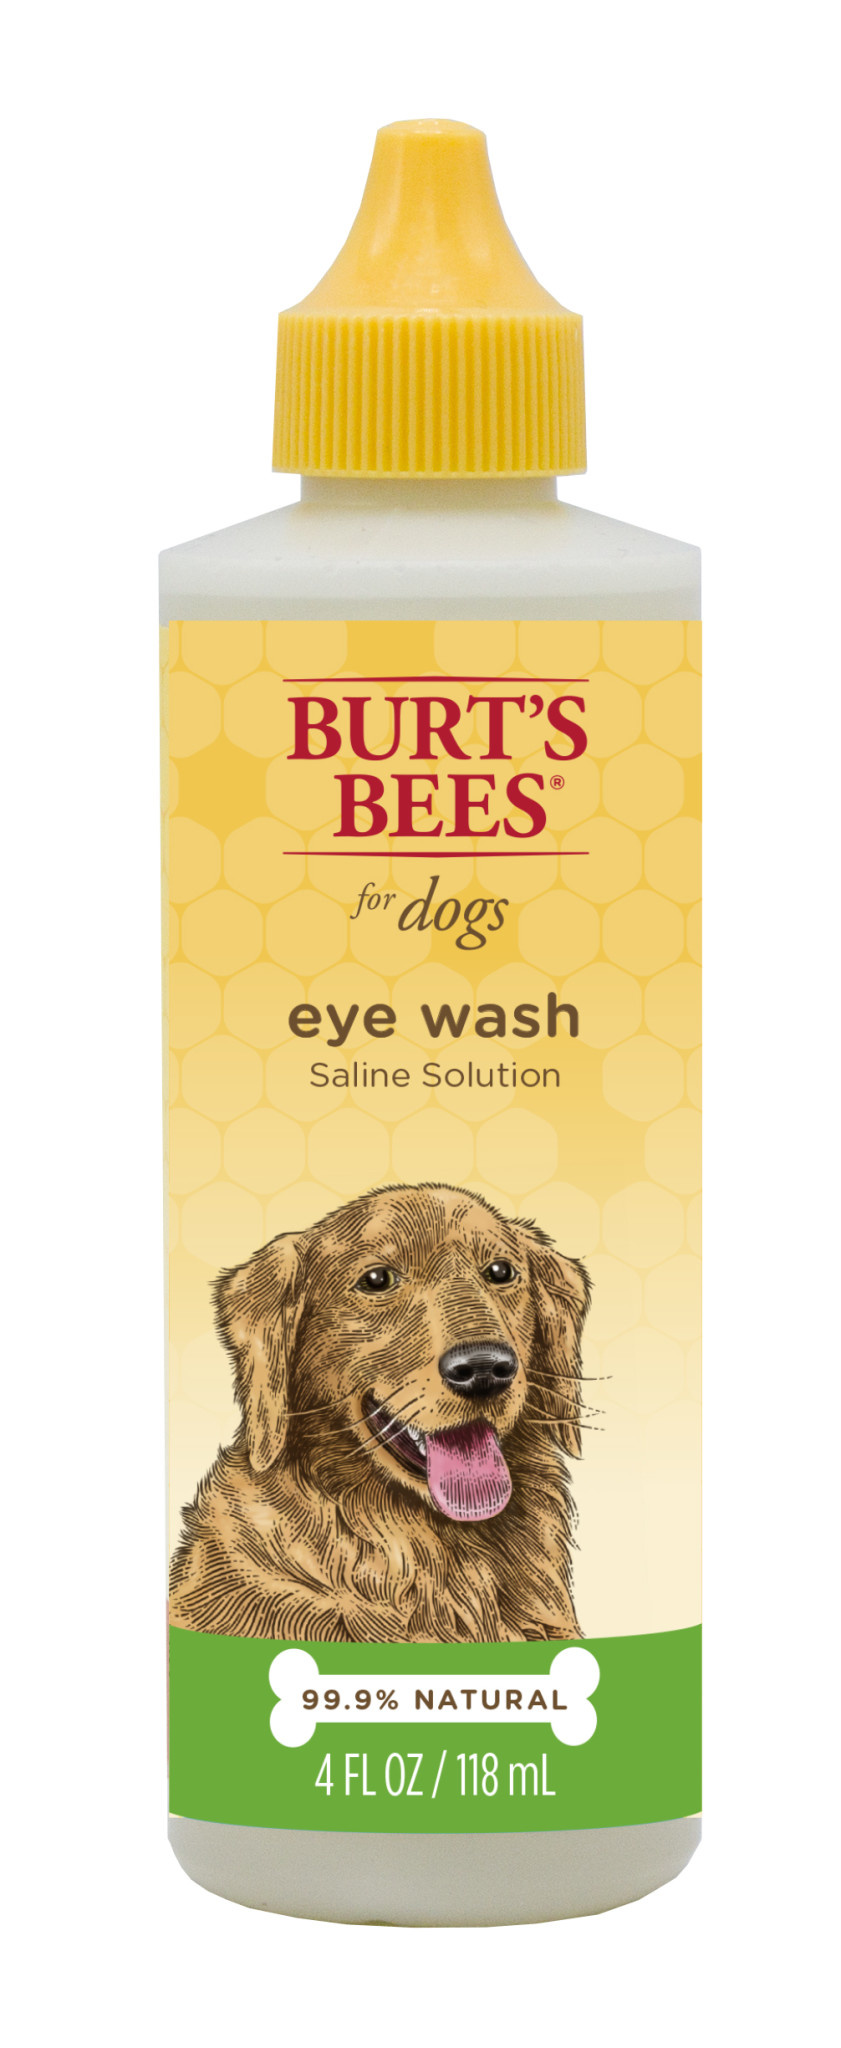 Burt's Bees Burt's Bees Eye Wash 4 oz